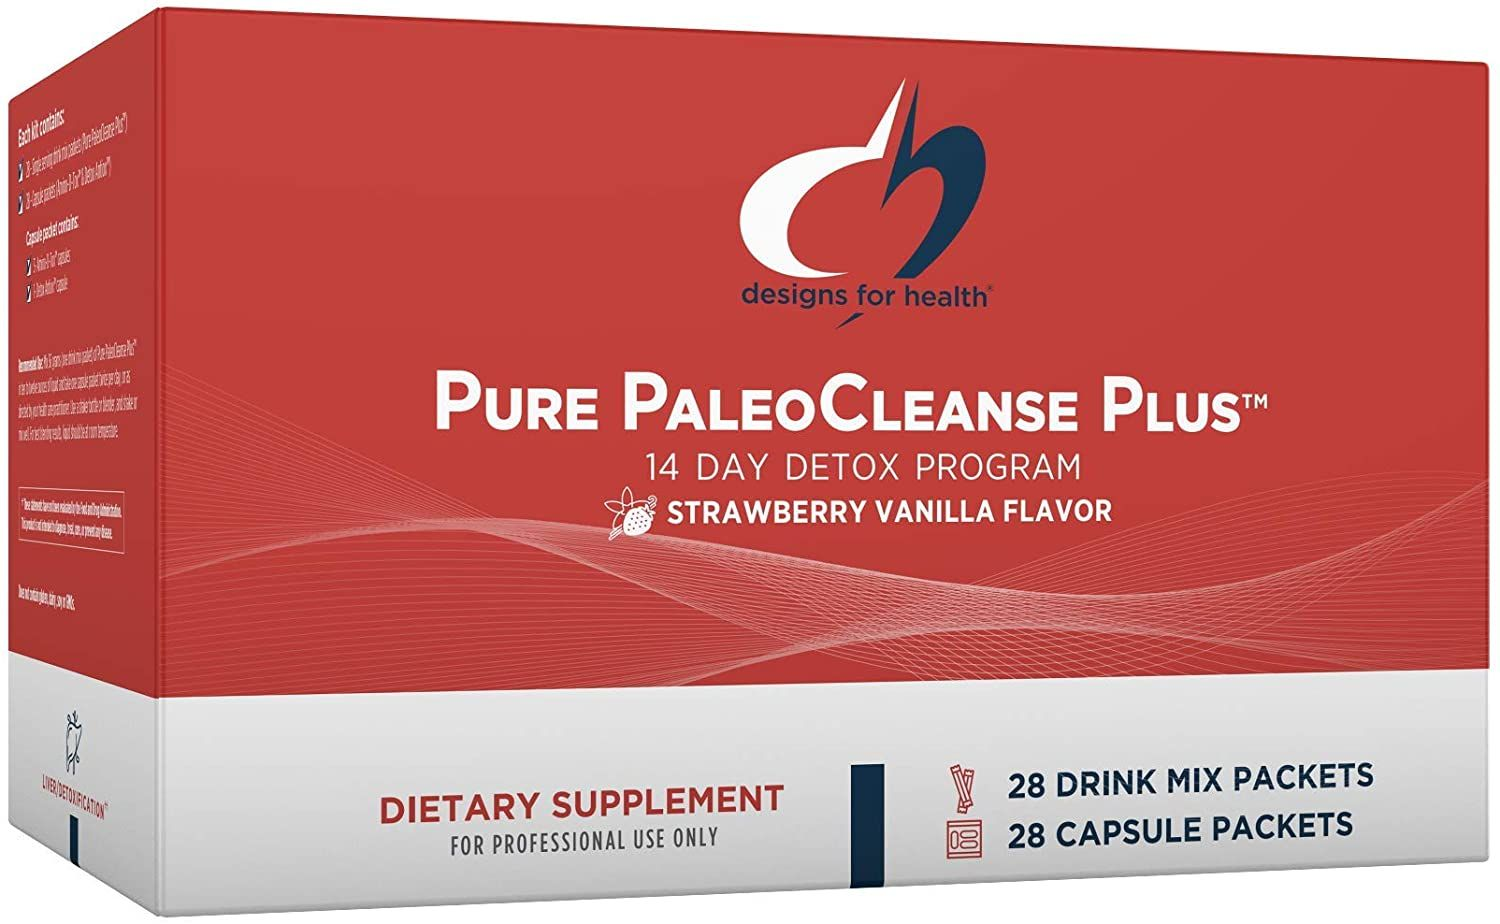 Designs For Health Pure Paleocleanse Plus 14 Day Detox Program Beef Protein Powder Amin Amazon Affiliate Link Click Imag Detox Program 14 Day Detox Detox